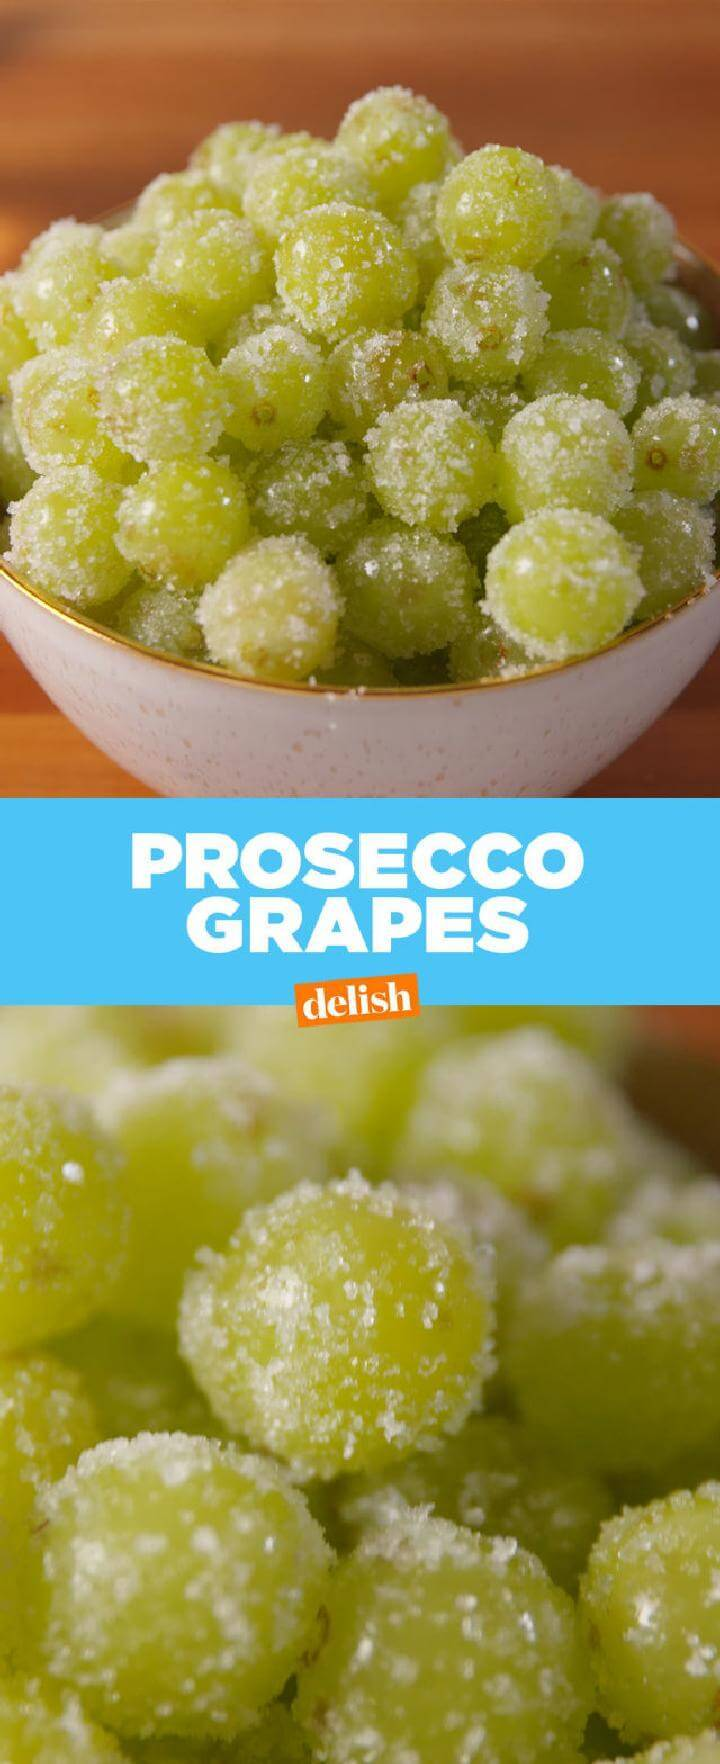 Prosecco Grapes for Graduation Party